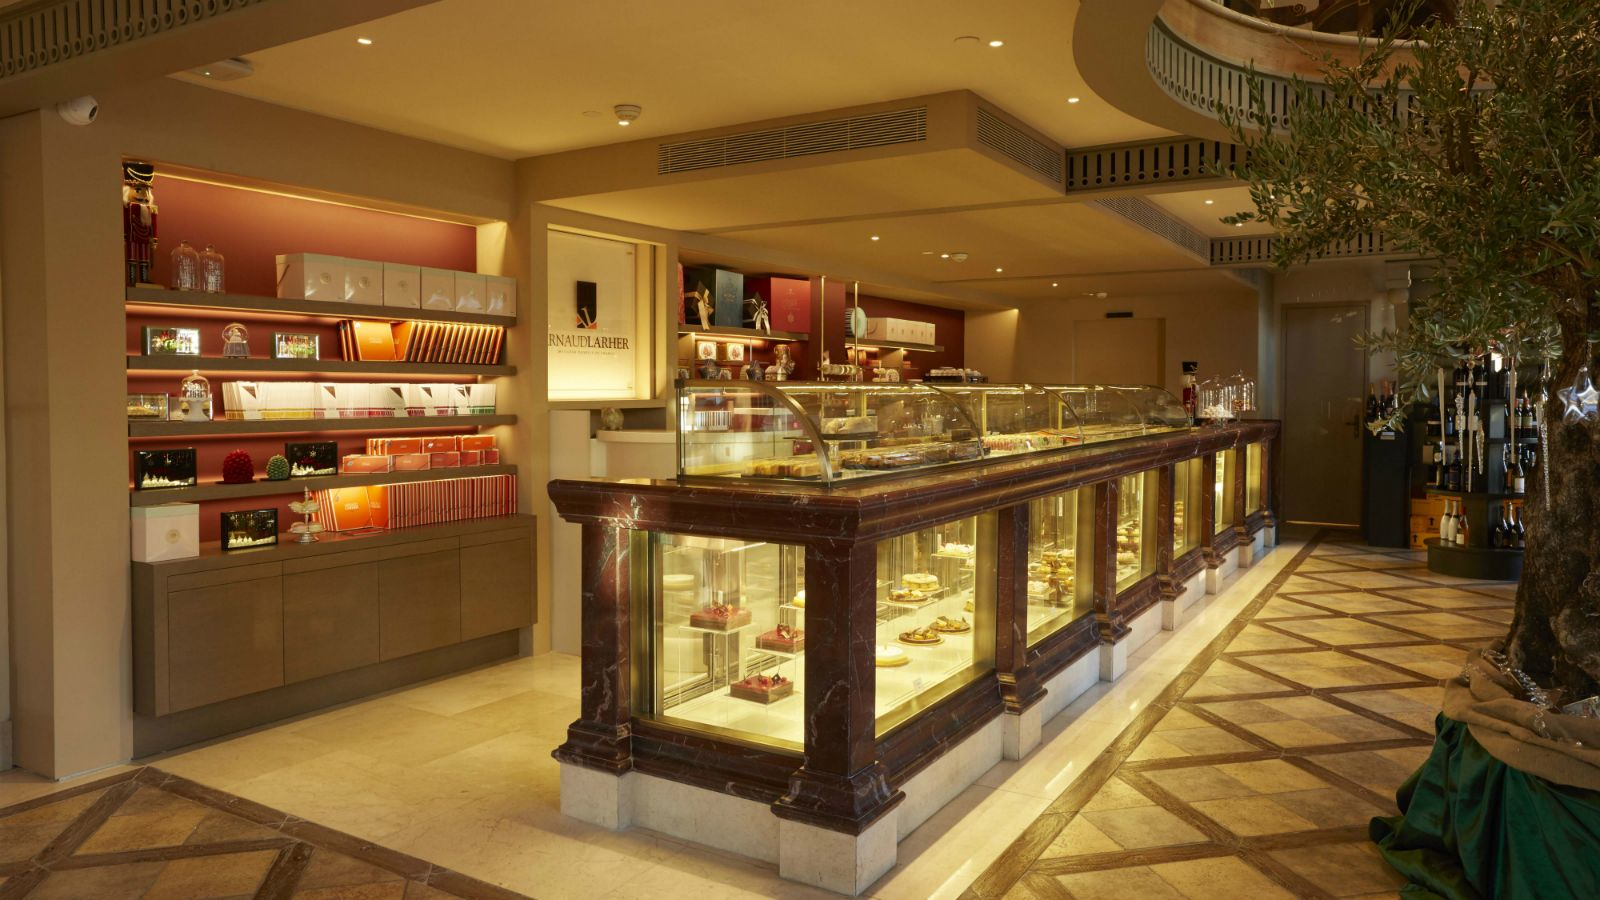 "=""GB-Corner-Gifts-and-Flavors-store-with-Arnaud-Larher-desserts-in-Athens-Hotel-Grande-Bretagne""/"